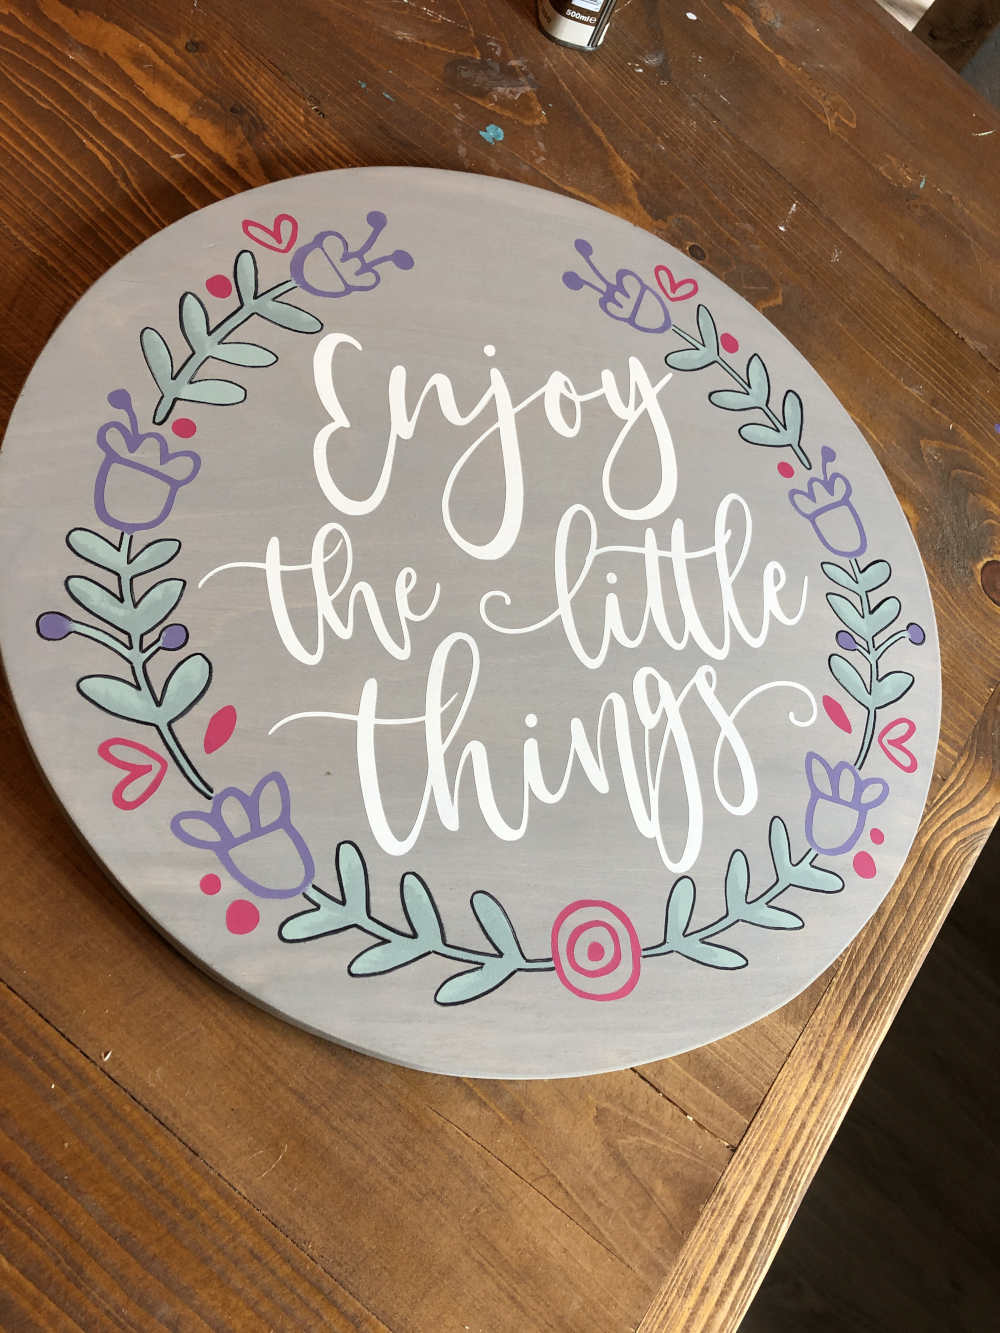 LARGE CIRCLE SOLID (PLY) 45CM X 45CM – £20